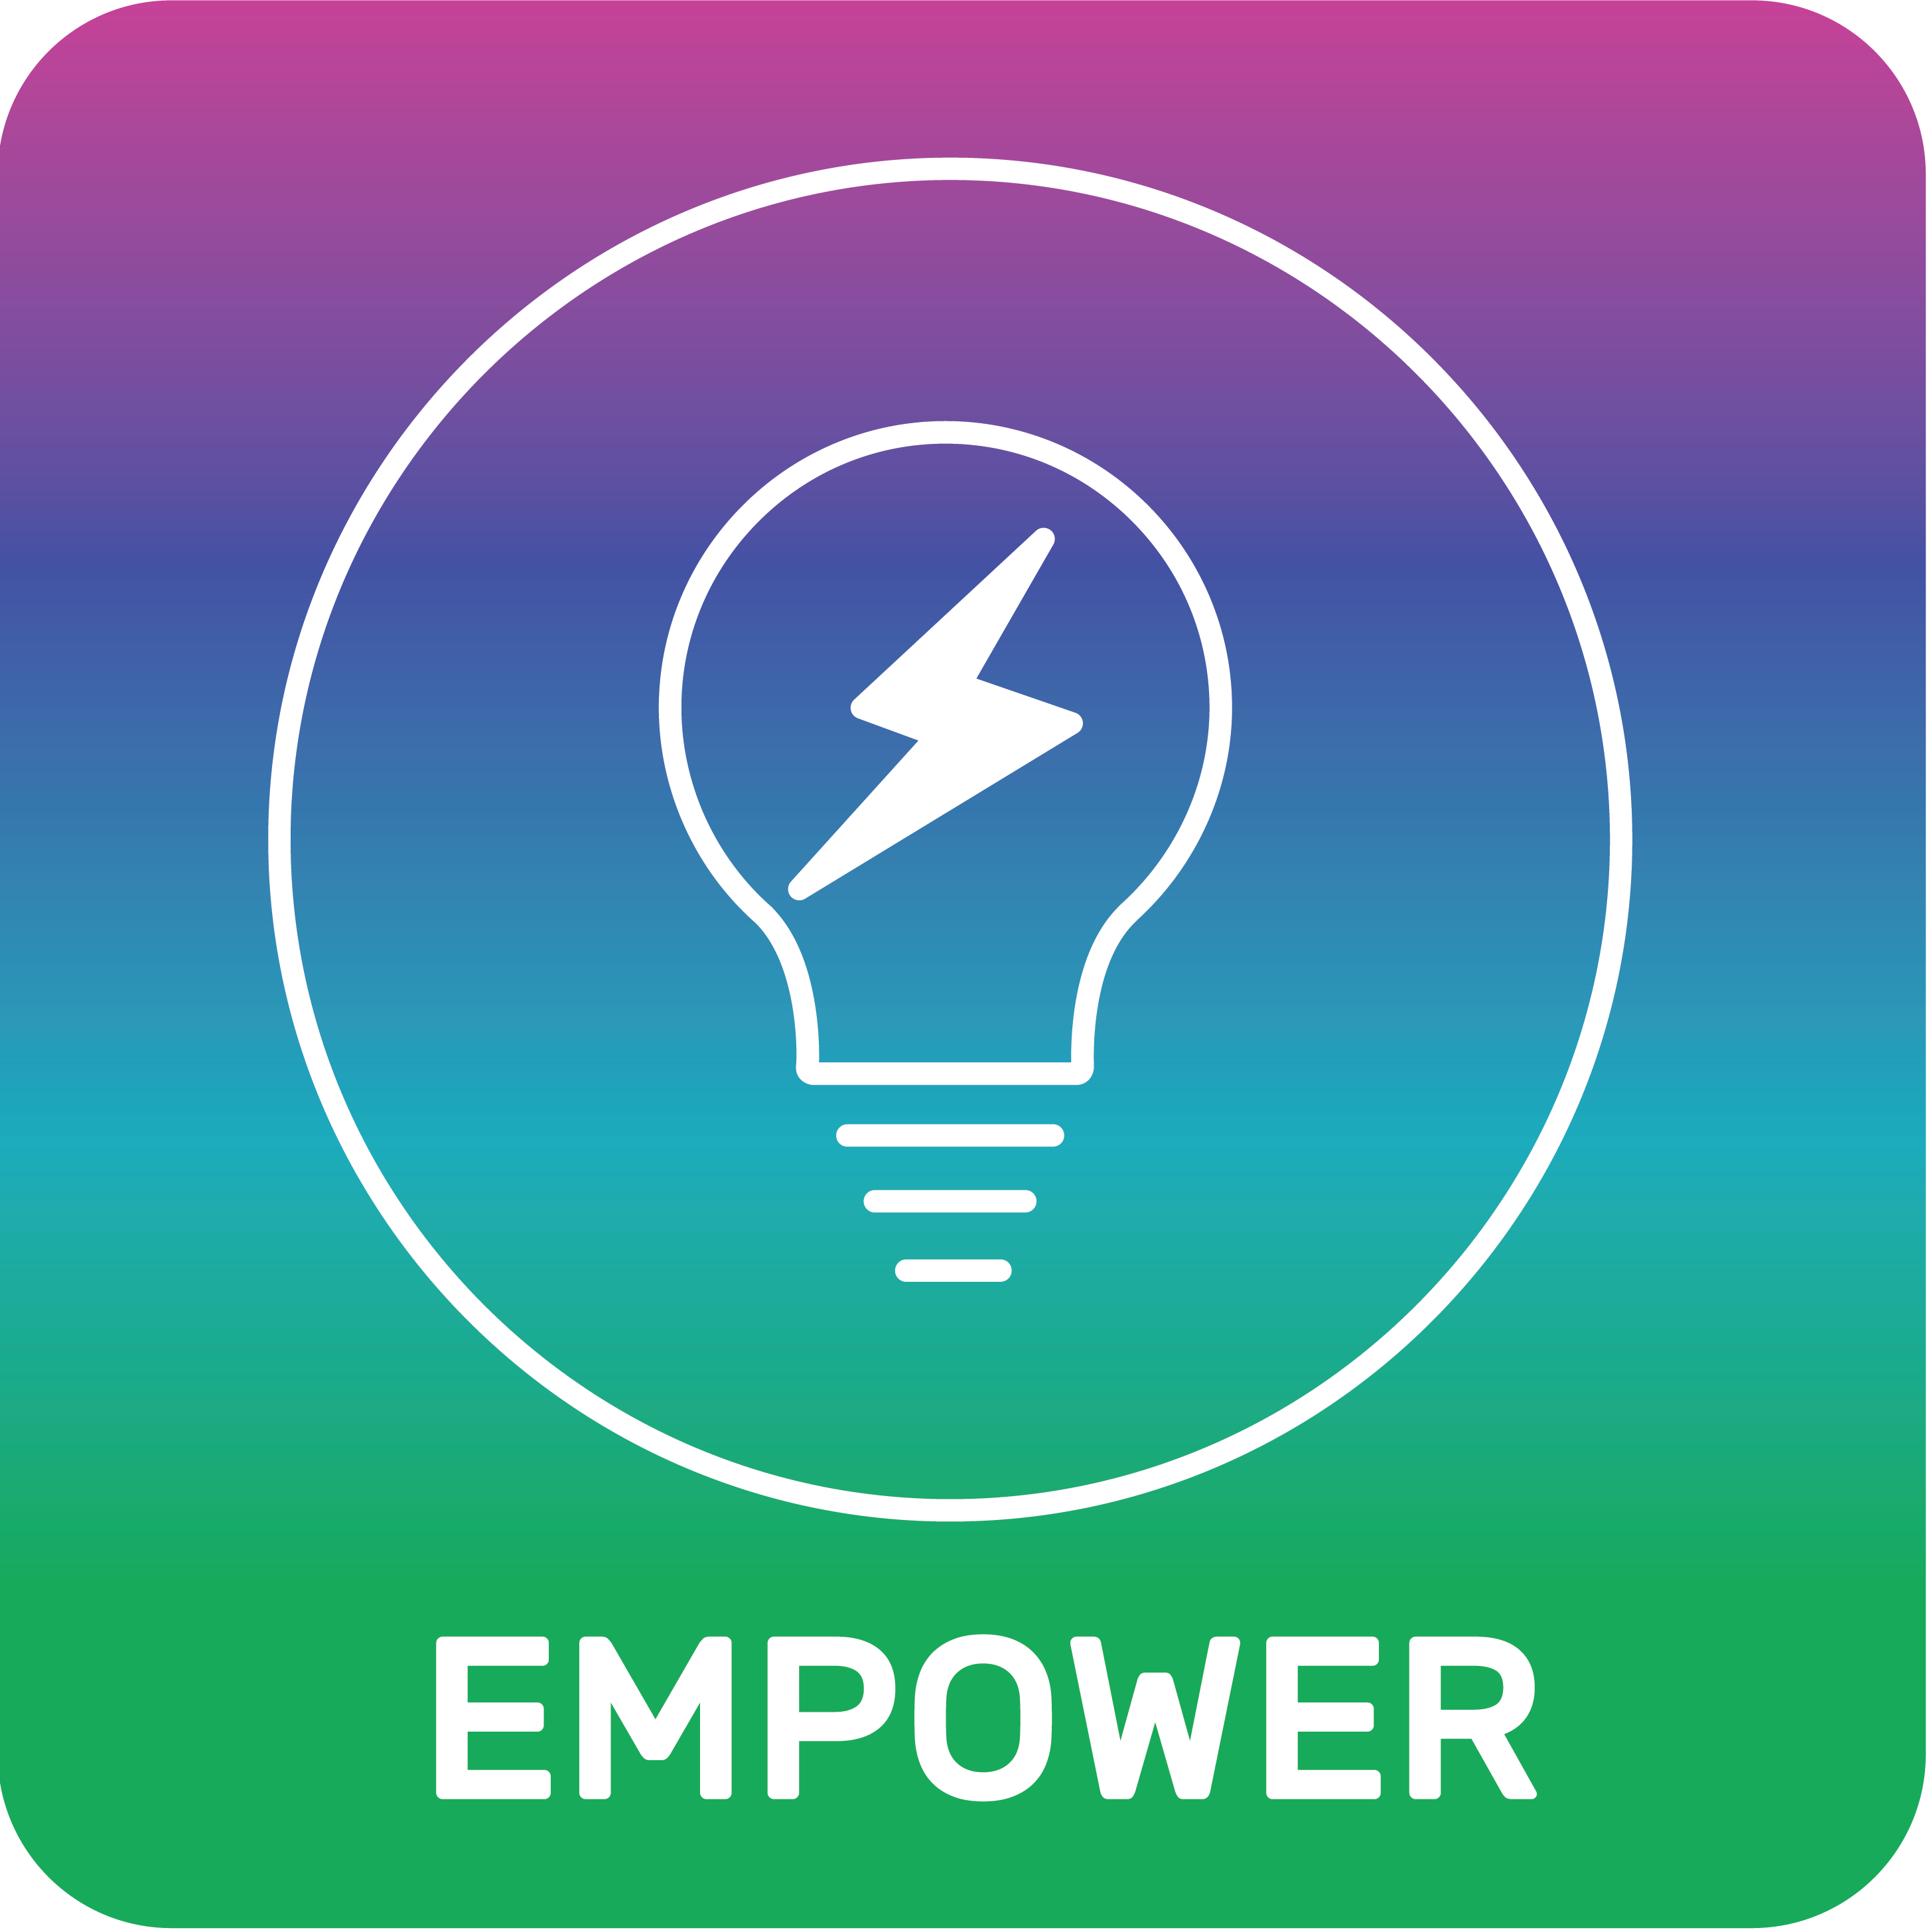 Empower DNA app by Toolbox Genomics in Sequencing.com's Genome App Store provides genetic personalized lifestyle guidance that runs on DNA data from AncestryDNA, 23andMe, FTDNA, My Heritage, Genes for Good (GFG), Helix, All Of Us, Dante Labs, Illumina, LivingDNA and genome sequencing.